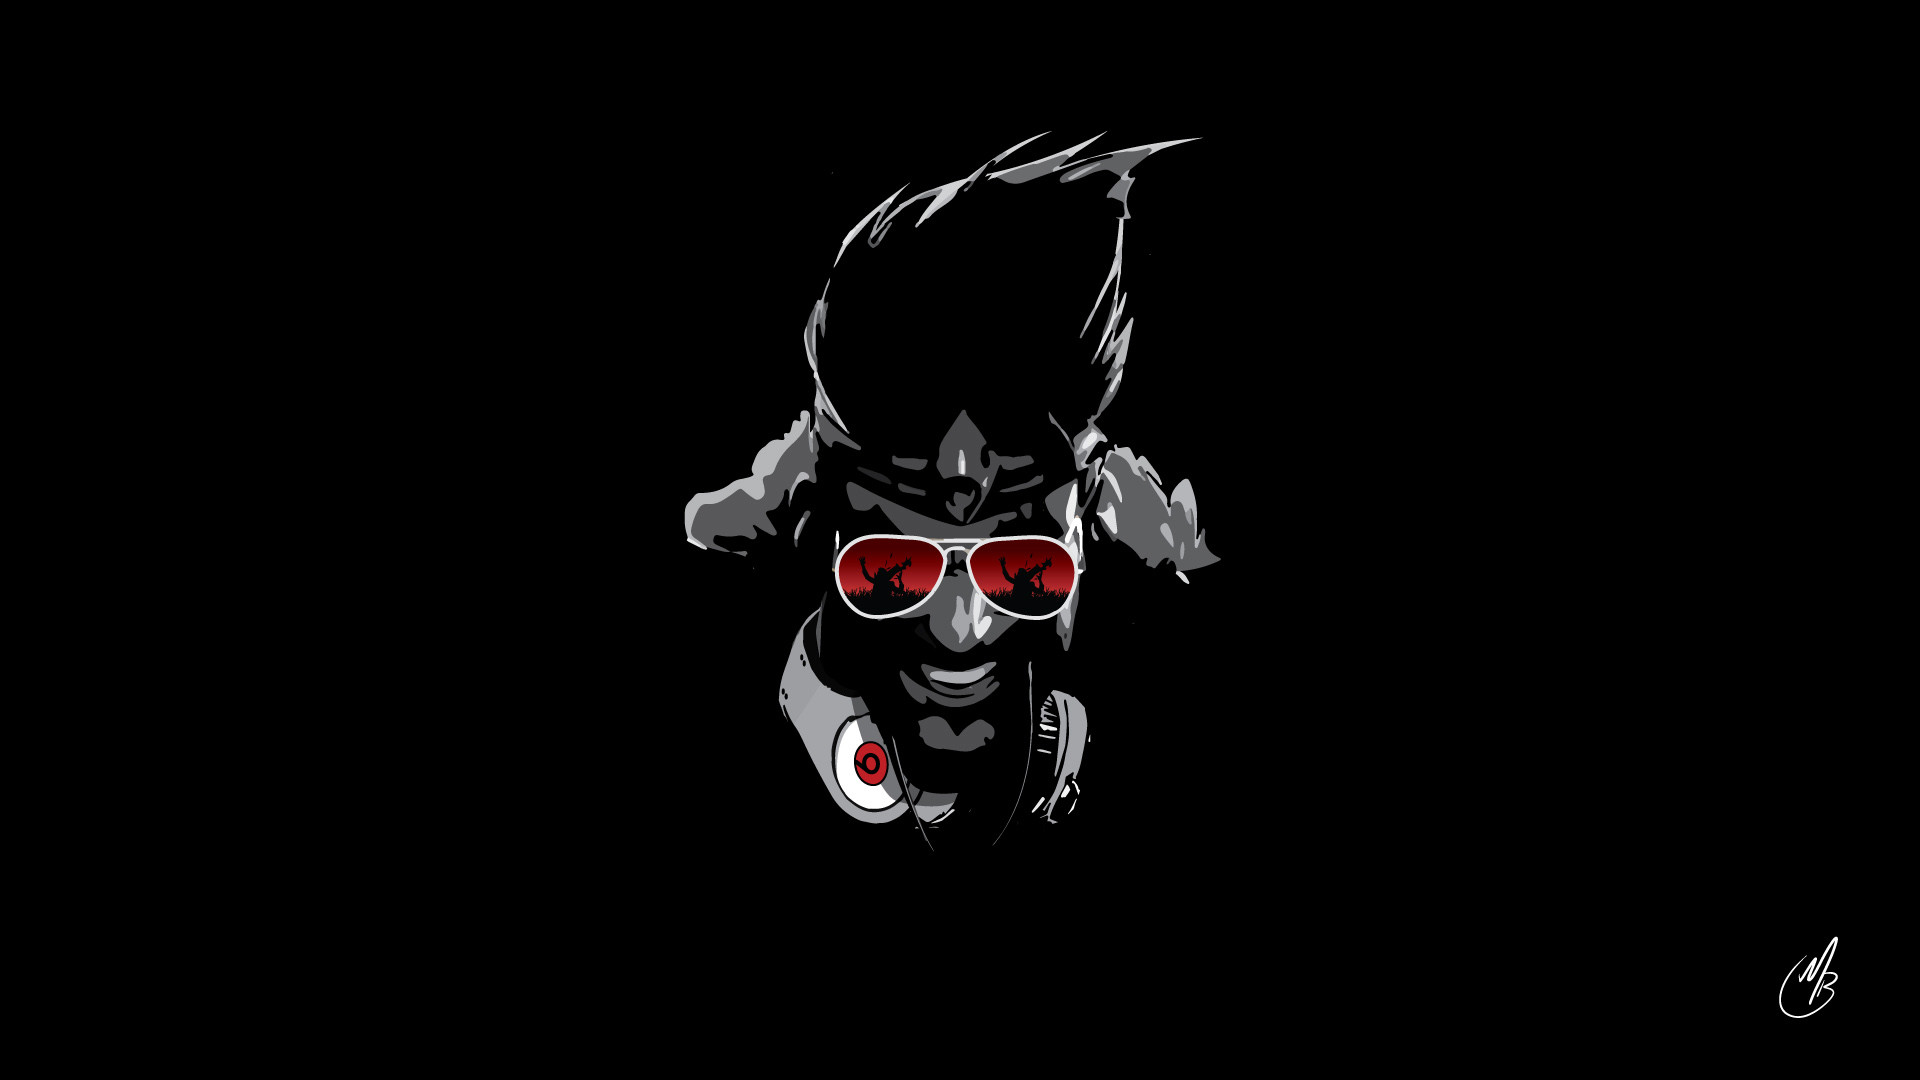 1920x1080 Beats by Draven by Mburgess1 HD Wallpaper Fan Art Artwork League of Legends  lol